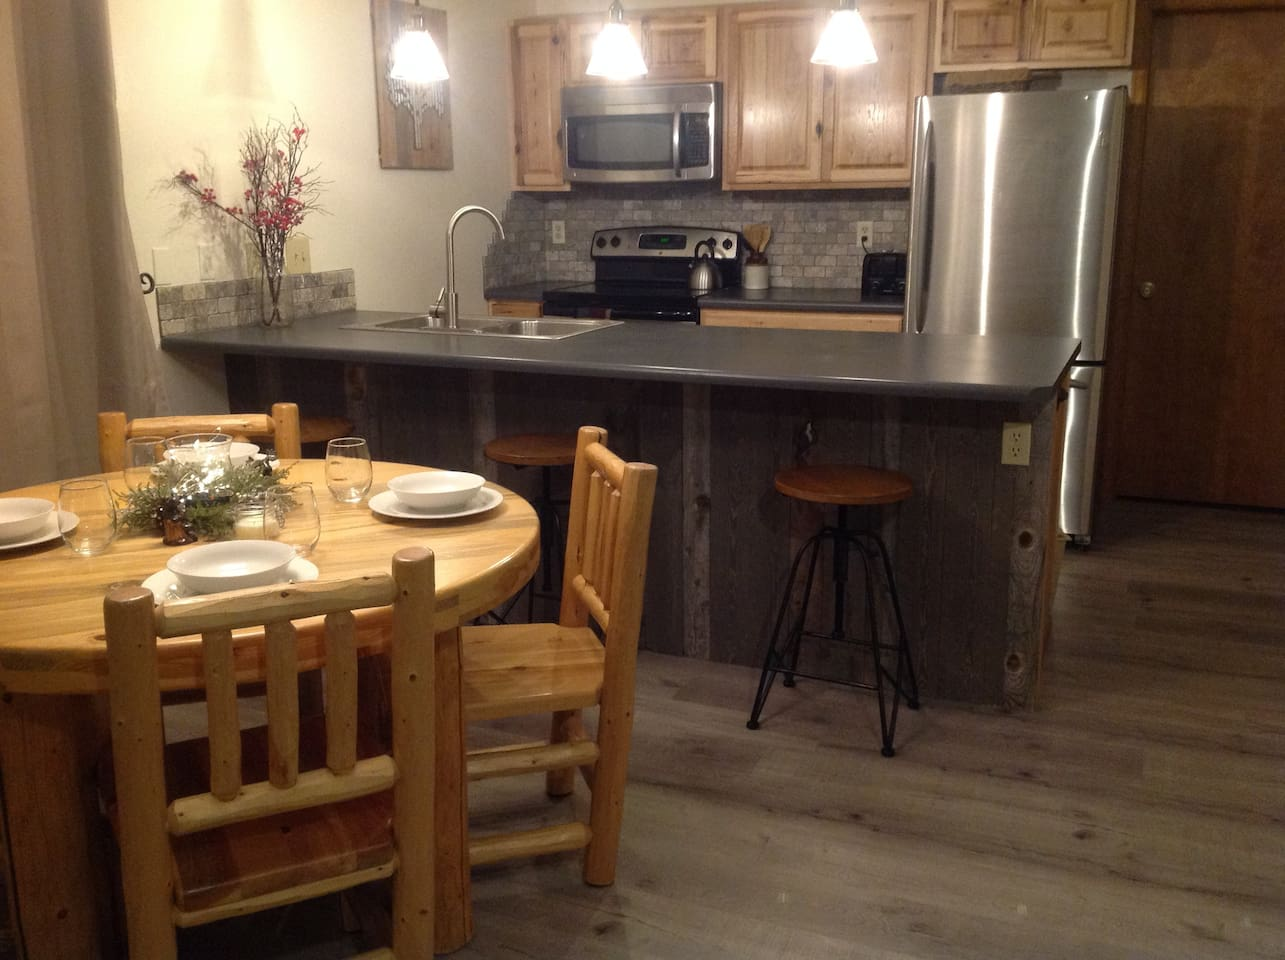 Remodeled kitchen with extra large countertop bar